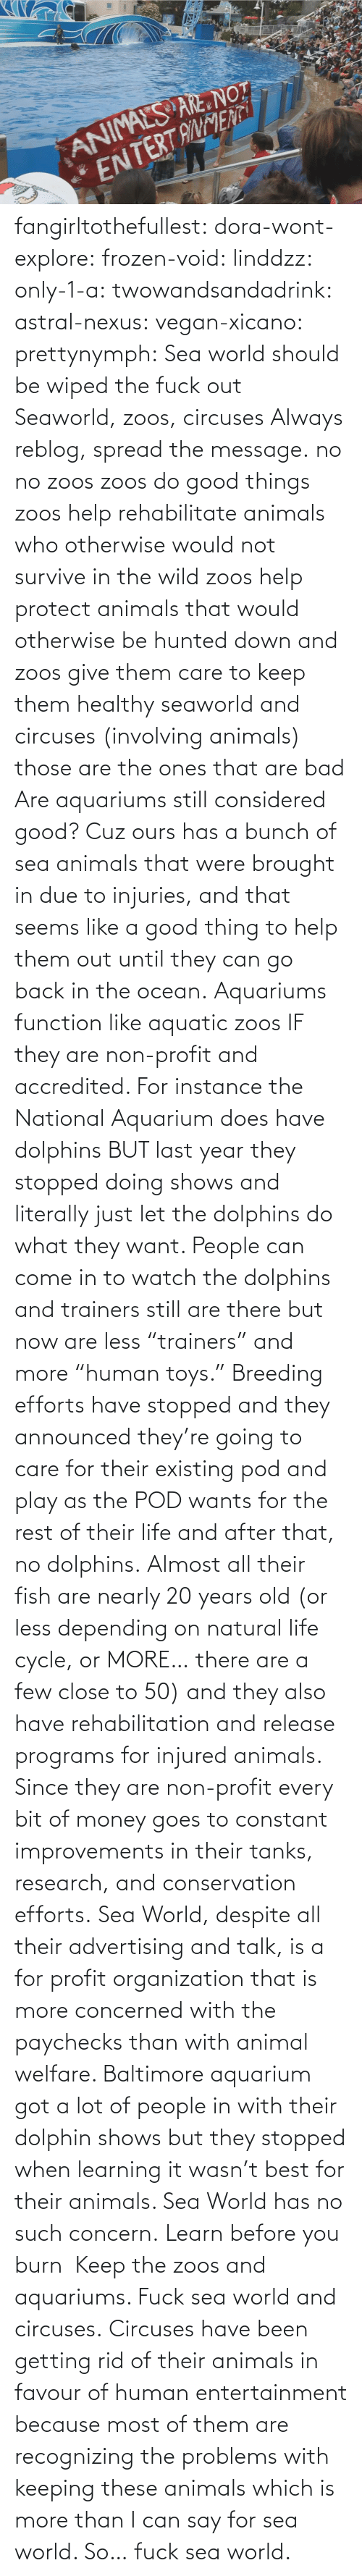 "rest: fangirltothefullest:  dora-wont-explore:  frozen-void:  linddzz:  only-1-a:  twowandsandadrink:  astral-nexus:  vegan-xicano:  prettynymph:  Sea world should be wiped the fuck out  Seaworld, zoos, circuses  Always reblog, spread the message.  no no zoos zoos do good things zoos help rehabilitate animals who otherwise would not survive in the wild zoos help protect animals that would otherwise be hunted down and zoos give them care to keep them healthy seaworld and circuses (involving animals) those are the ones that are bad  Are aquariums still considered good? Cuz ours has a bunch of sea animals that were brought in due to injuries, and that seems like a good thing to help them out until they can go back in the ocean.  Aquariums function like aquatic zoos IF they are non-profit and accredited. For instance the National Aquarium does have dolphins BUT last year they stopped doing shows and literally just let the dolphins do what they want. People can come in to watch the dolphins and trainers still are there but now are less ""trainers"" and more ""human toys."" Breeding efforts have stopped and they announced they're going to care for their existing pod and play as the POD wants for the rest of their life and after that, no dolphins. Almost all their fish are nearly 20 years old (or less depending on natural life cycle, or MORE… there are a few close to 50) and they also have rehabilitation and release programs for injured animals. Since they are non-profit every bit of money goes to constant improvements in their tanks, research, and conservation efforts. Sea World, despite all their advertising and talk, is a for profit organization that is more concerned with the paychecks than with animal welfare. Baltimore aquarium got a lot of people in with their dolphin shows but they stopped when learning it wasn't best for their animals. Sea World has no such concern.  Learn before you burn   Keep the zoos and aquariums. Fuck sea world and circuses.  Circuses have been getting rid of  their animals in favour of human entertainment because most of them are recognizing the problems with keeping these animals which is more than I can say for sea world. So… fuck sea world."